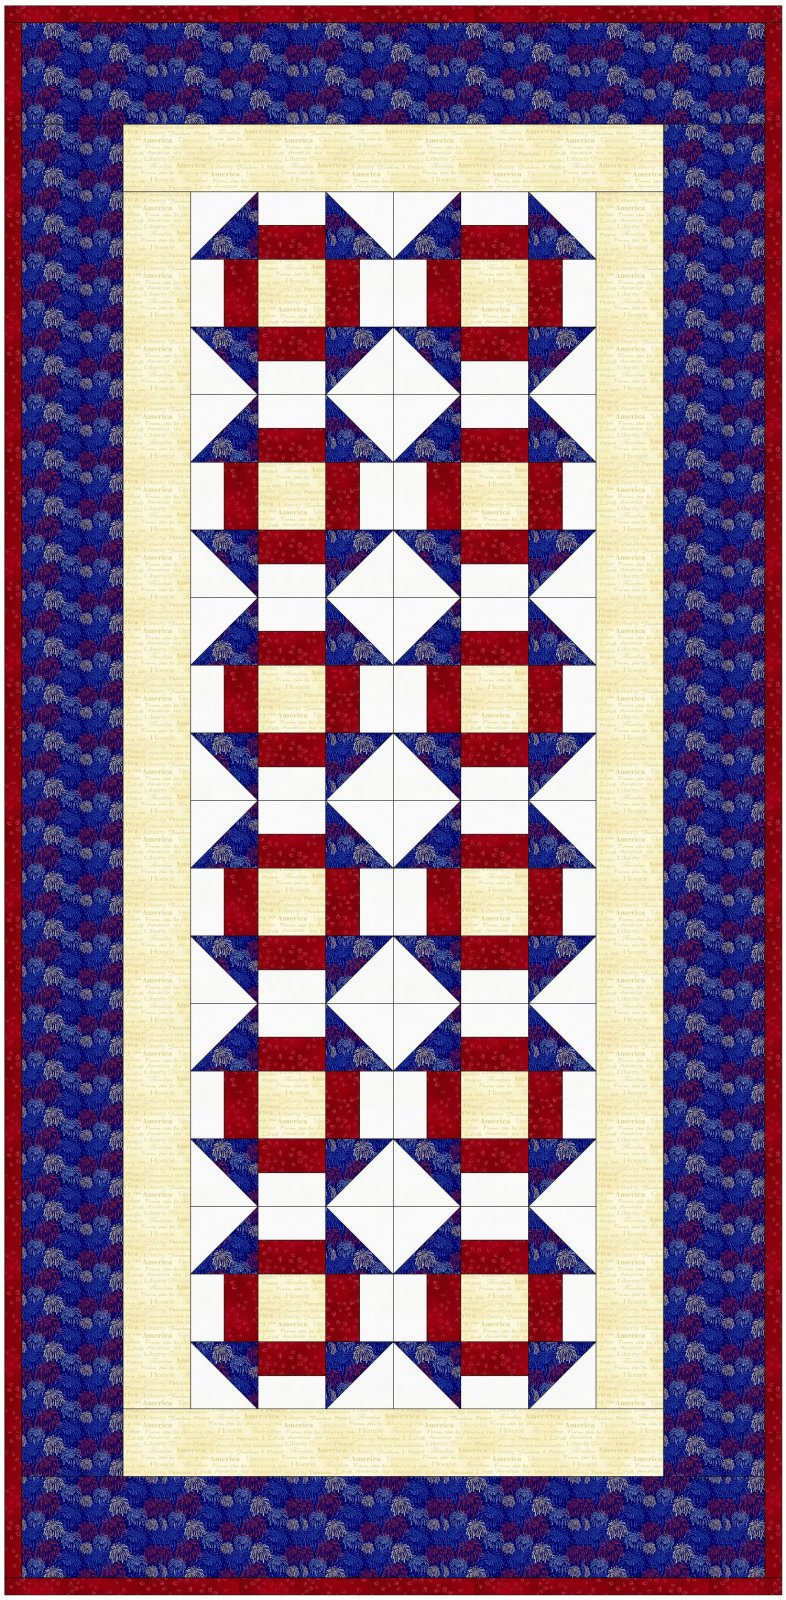 Hero's Wave Table Runner and Placemat Kit